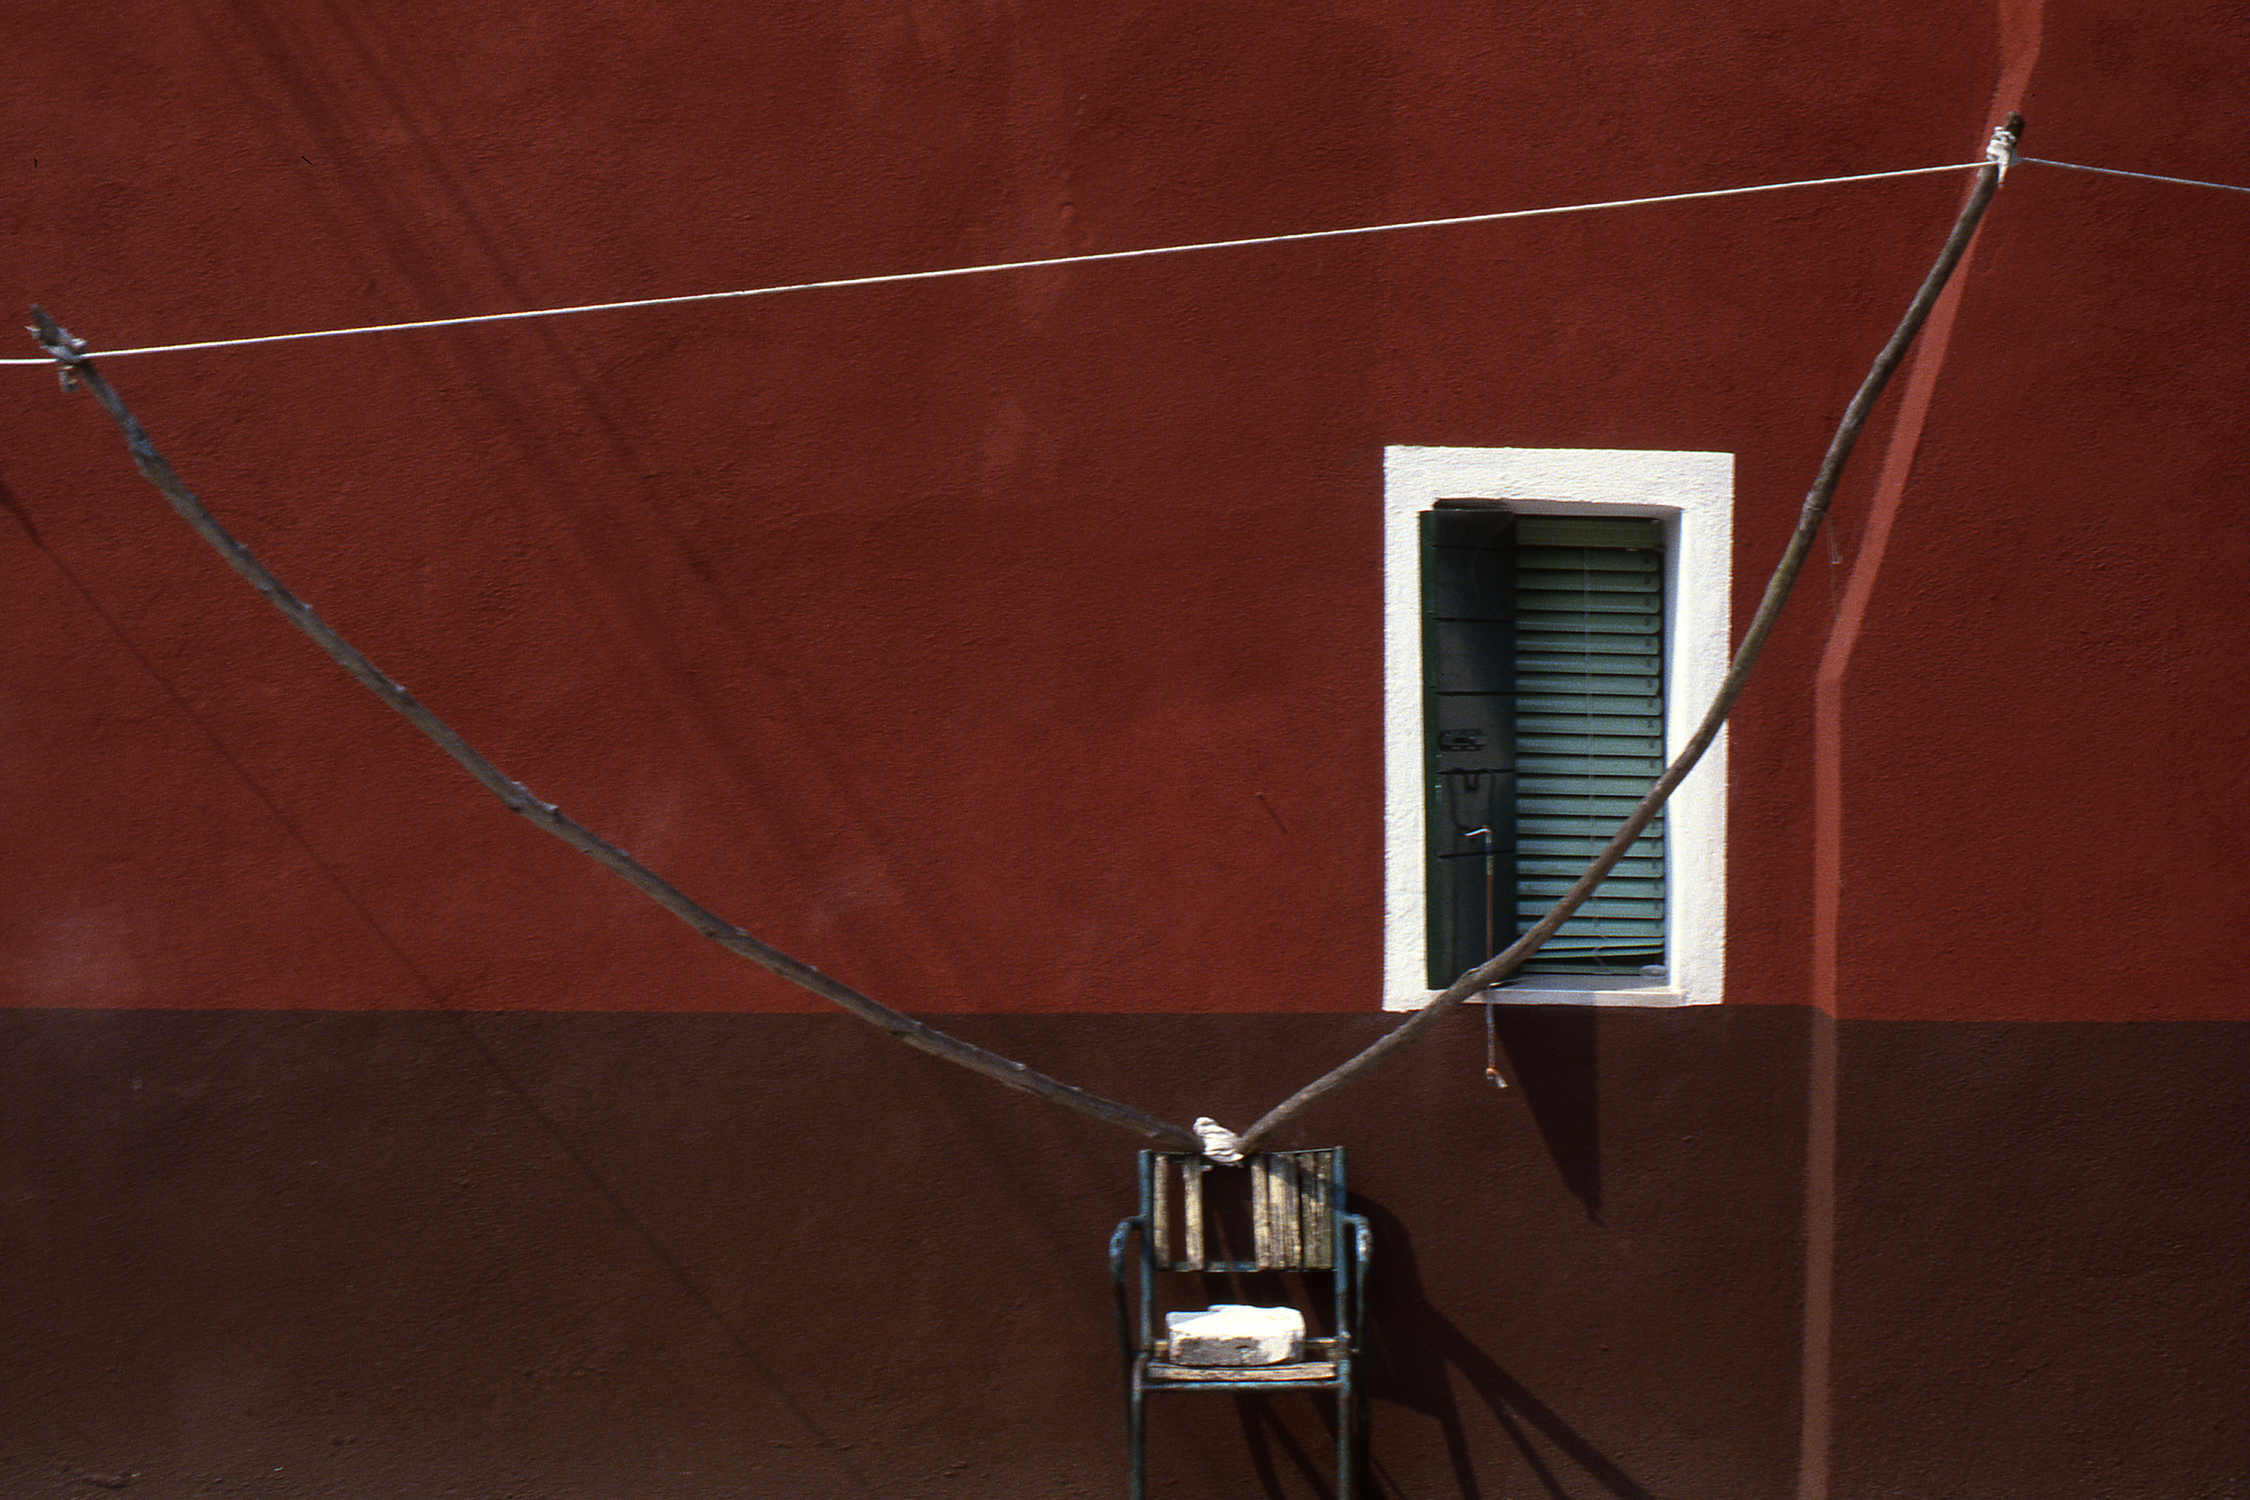 Red Wall with Clothesline, Burano Italy, 1978 ,Cibachrome Print, 16 x 24cm, Edition of 10.              Exhibition:  Burano Colour Works ,Australian Centre for Photography, Sydney; Solander Gallery, Canberra; Wagga Wagga City Art Gallery,Wagga Wagga, 1979.